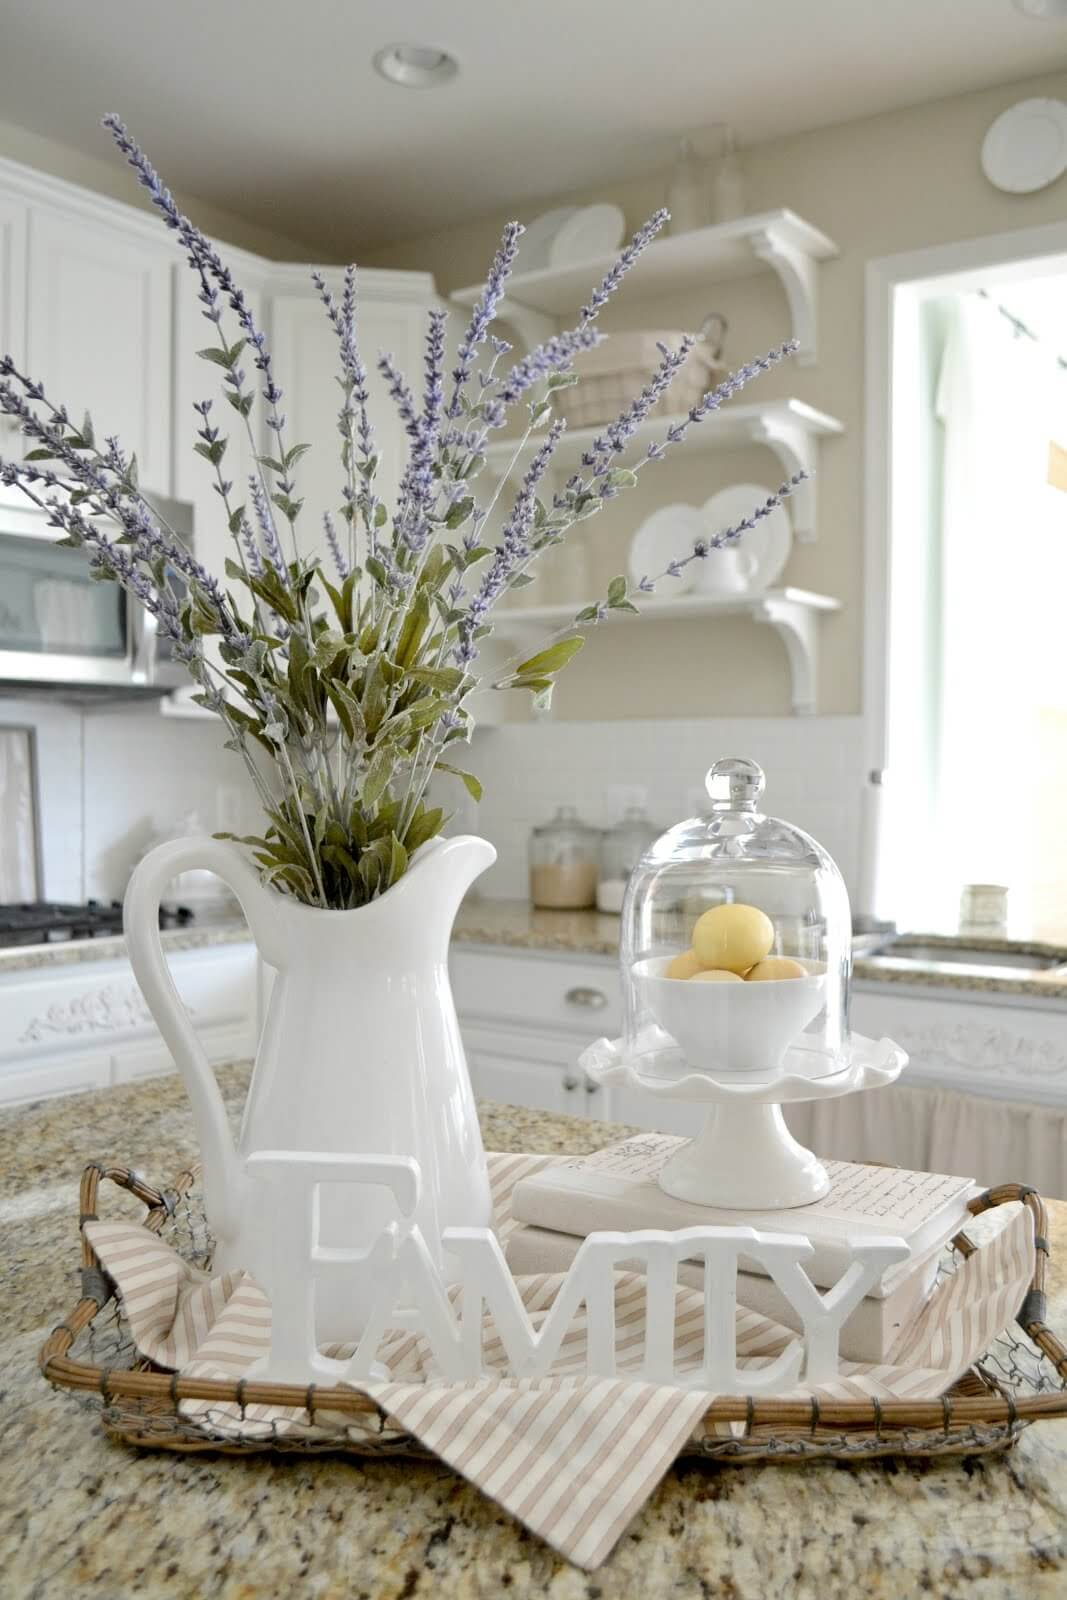 Creamy Whites and Pastels in a Wire Basket